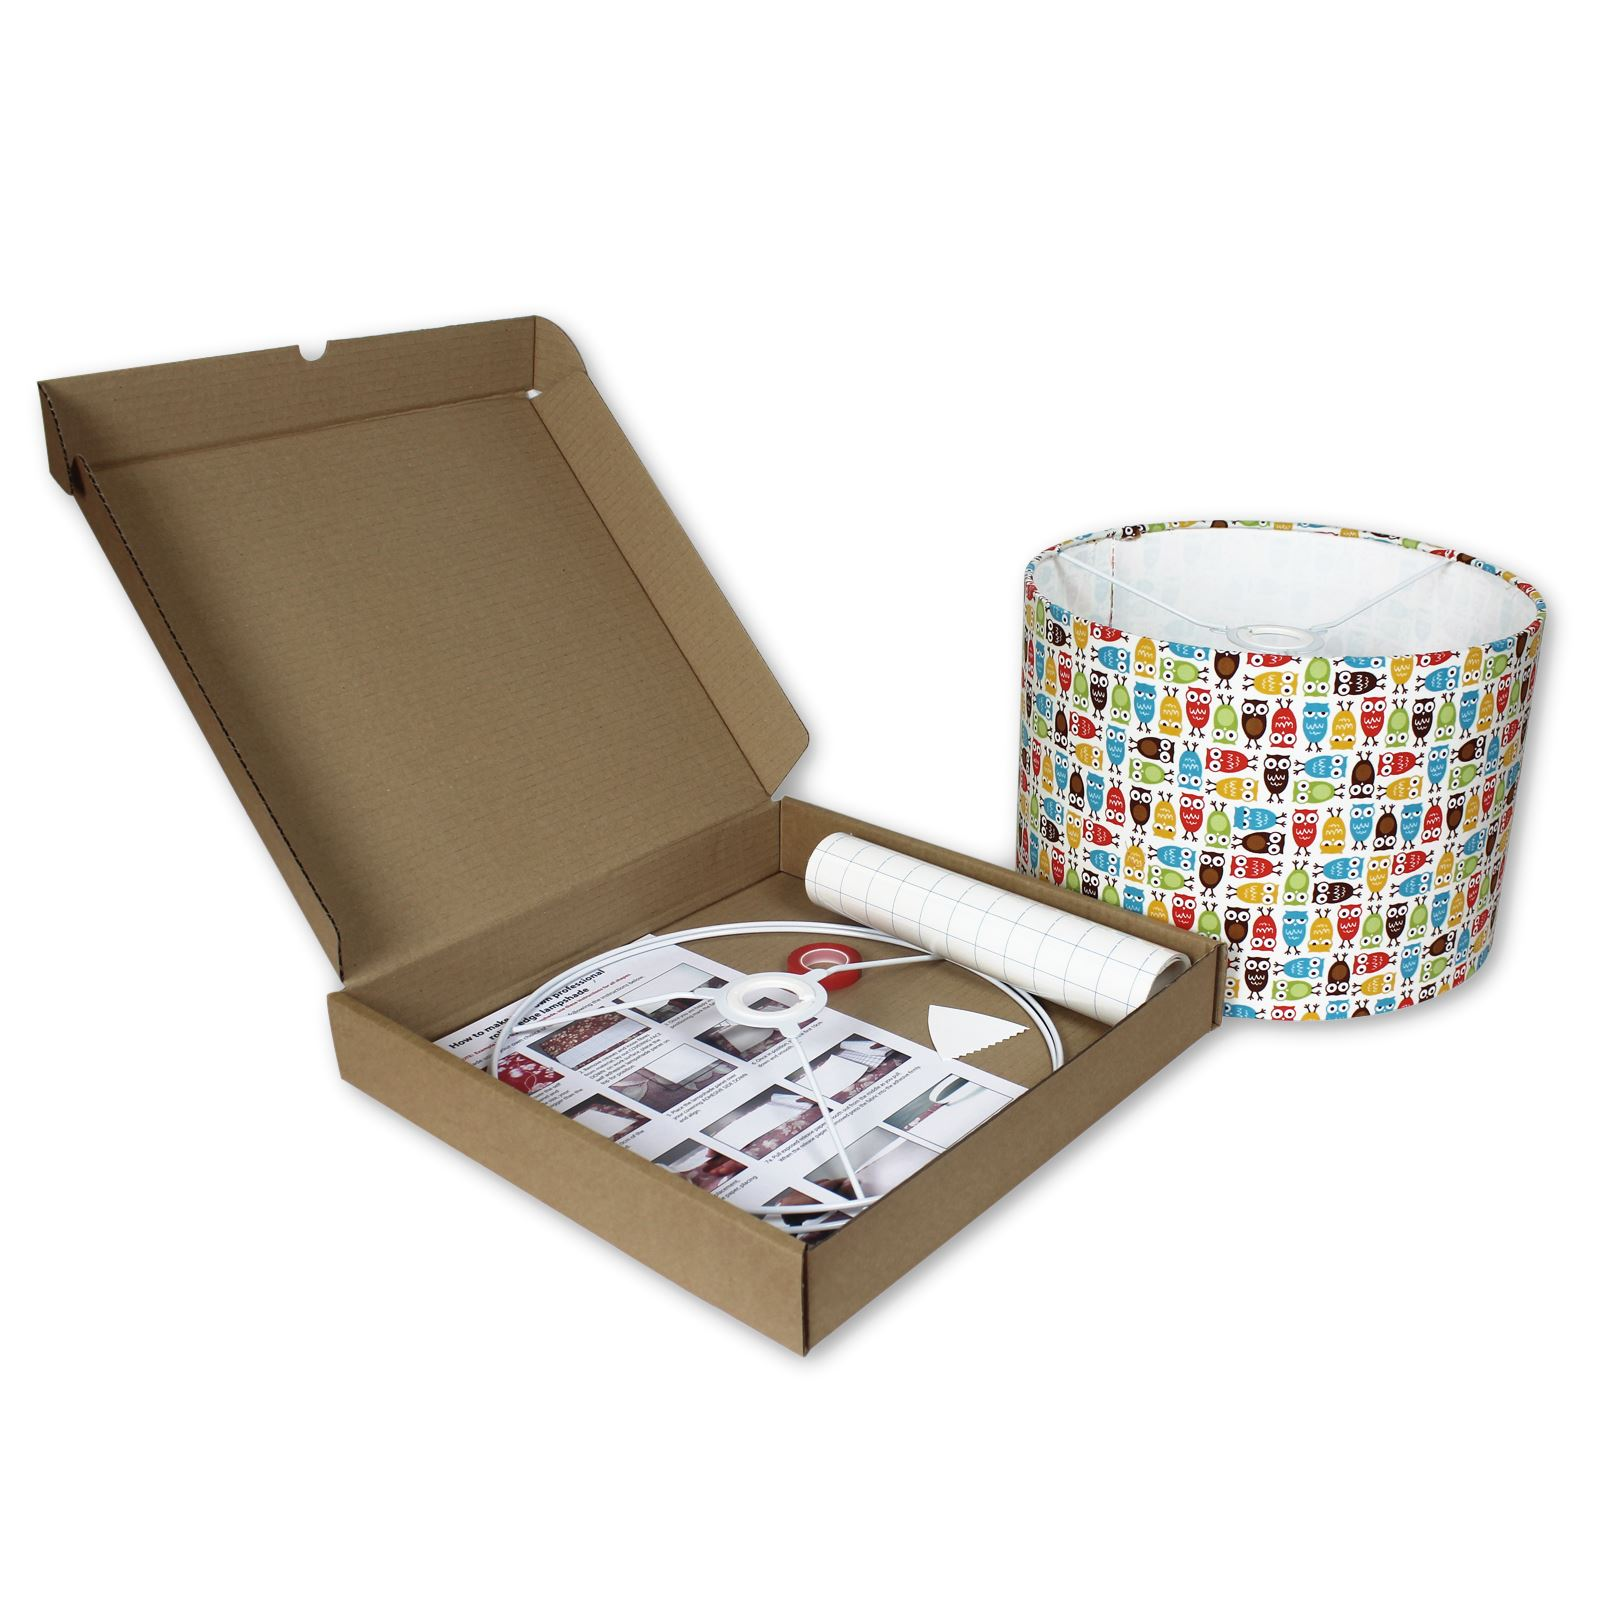 Lampshade Kits Make Your Own Lampshade 30cm Diameter Drum EBay